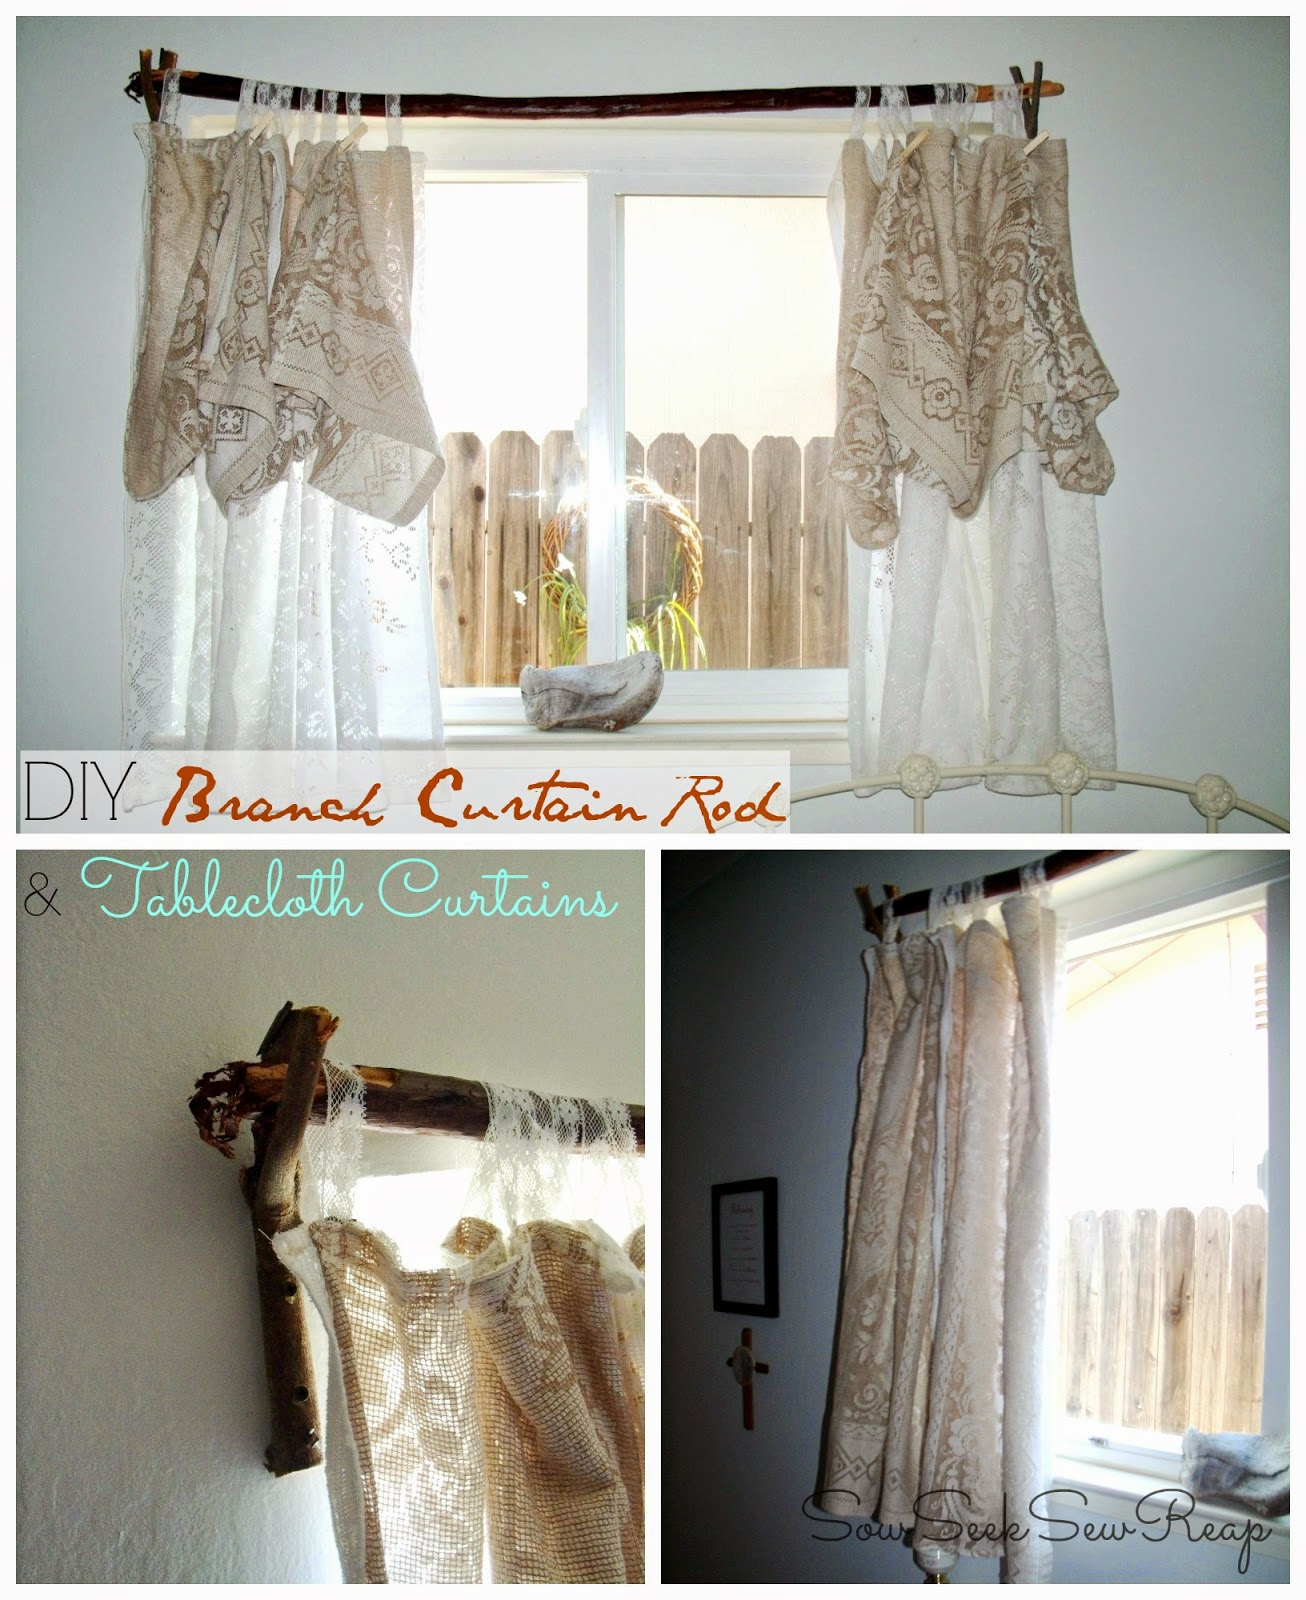 DIY CURTAIN ROD, BRANCH CURTAIN ROD, TABLECLOTH CURTAINS